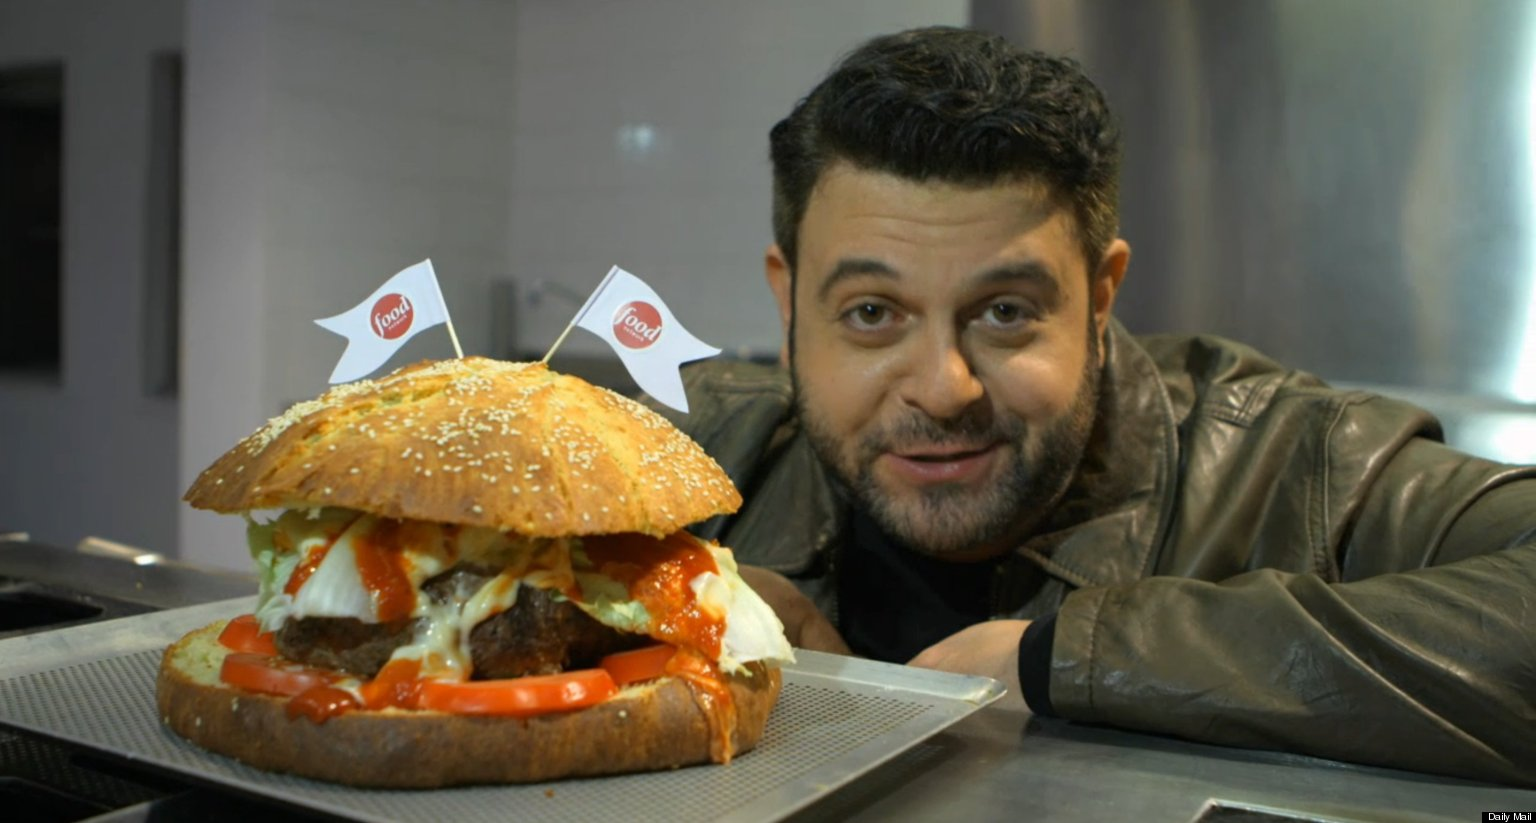 Adam Richman Offers Food Challenge Tips To Journalists Eating 5-Pound Burger (VIDEO)   HuffPost